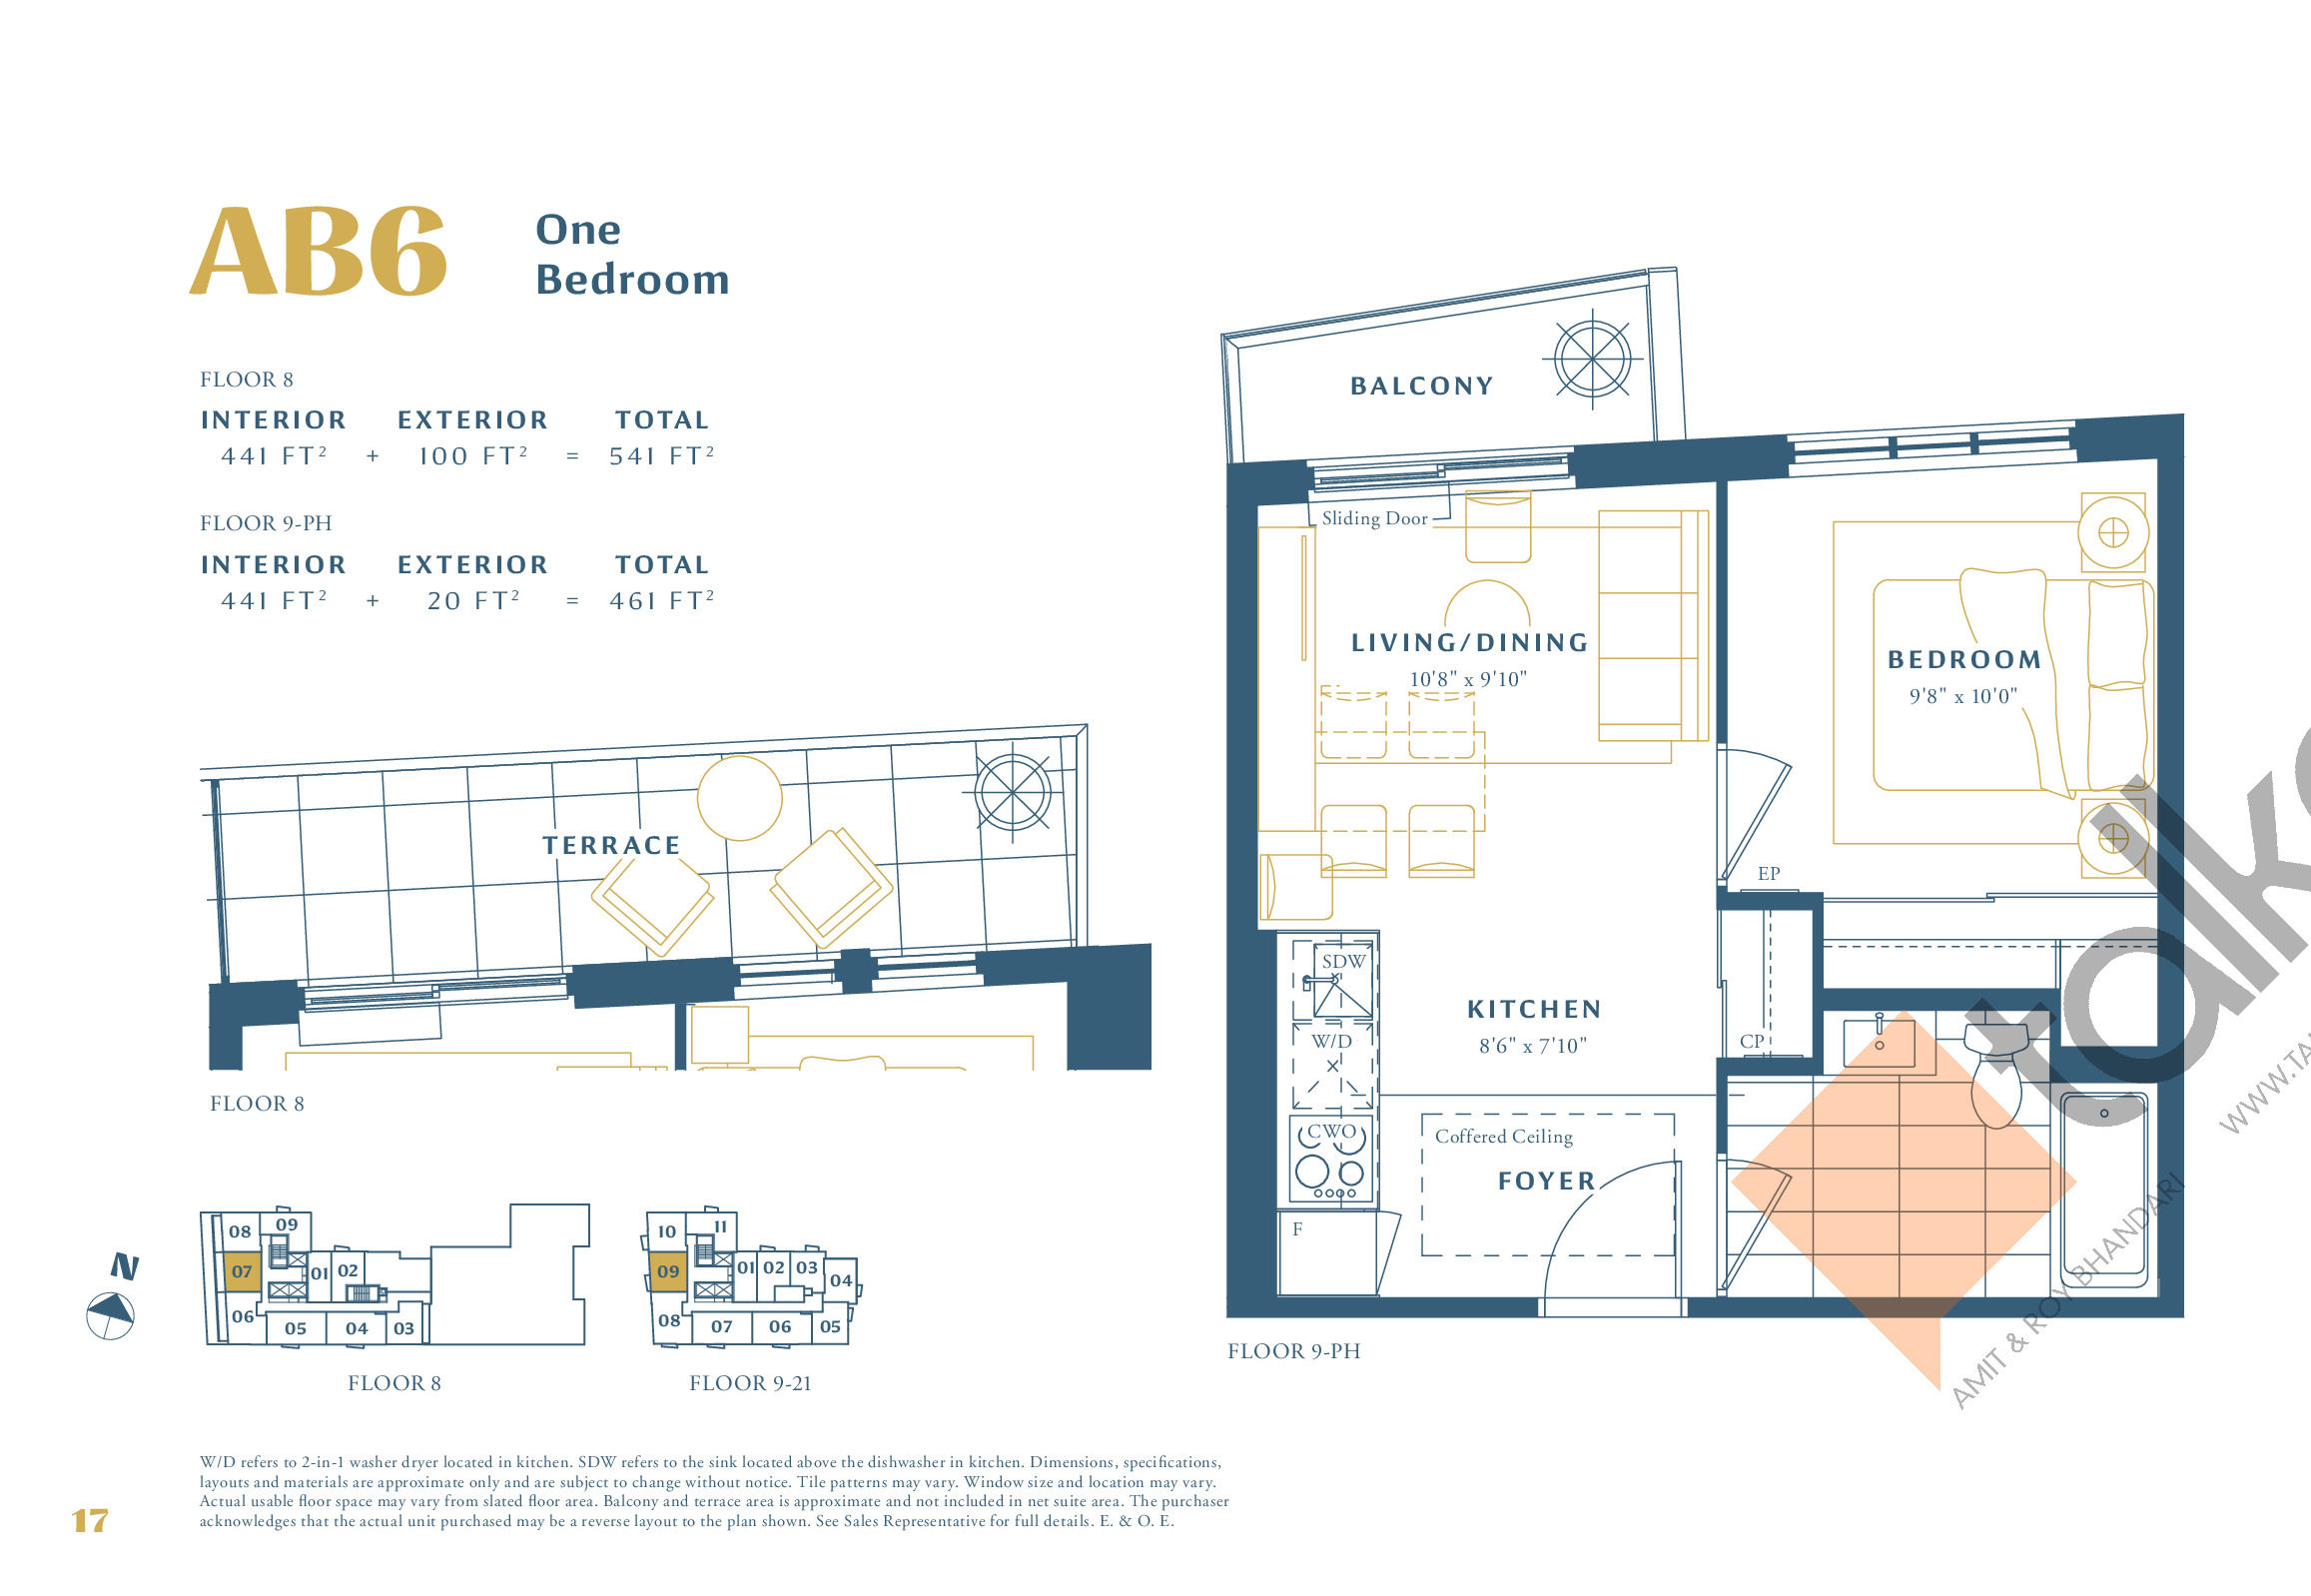 AB6 Floor Plan at The Borough Condos - Tower A - 441 sq.ft